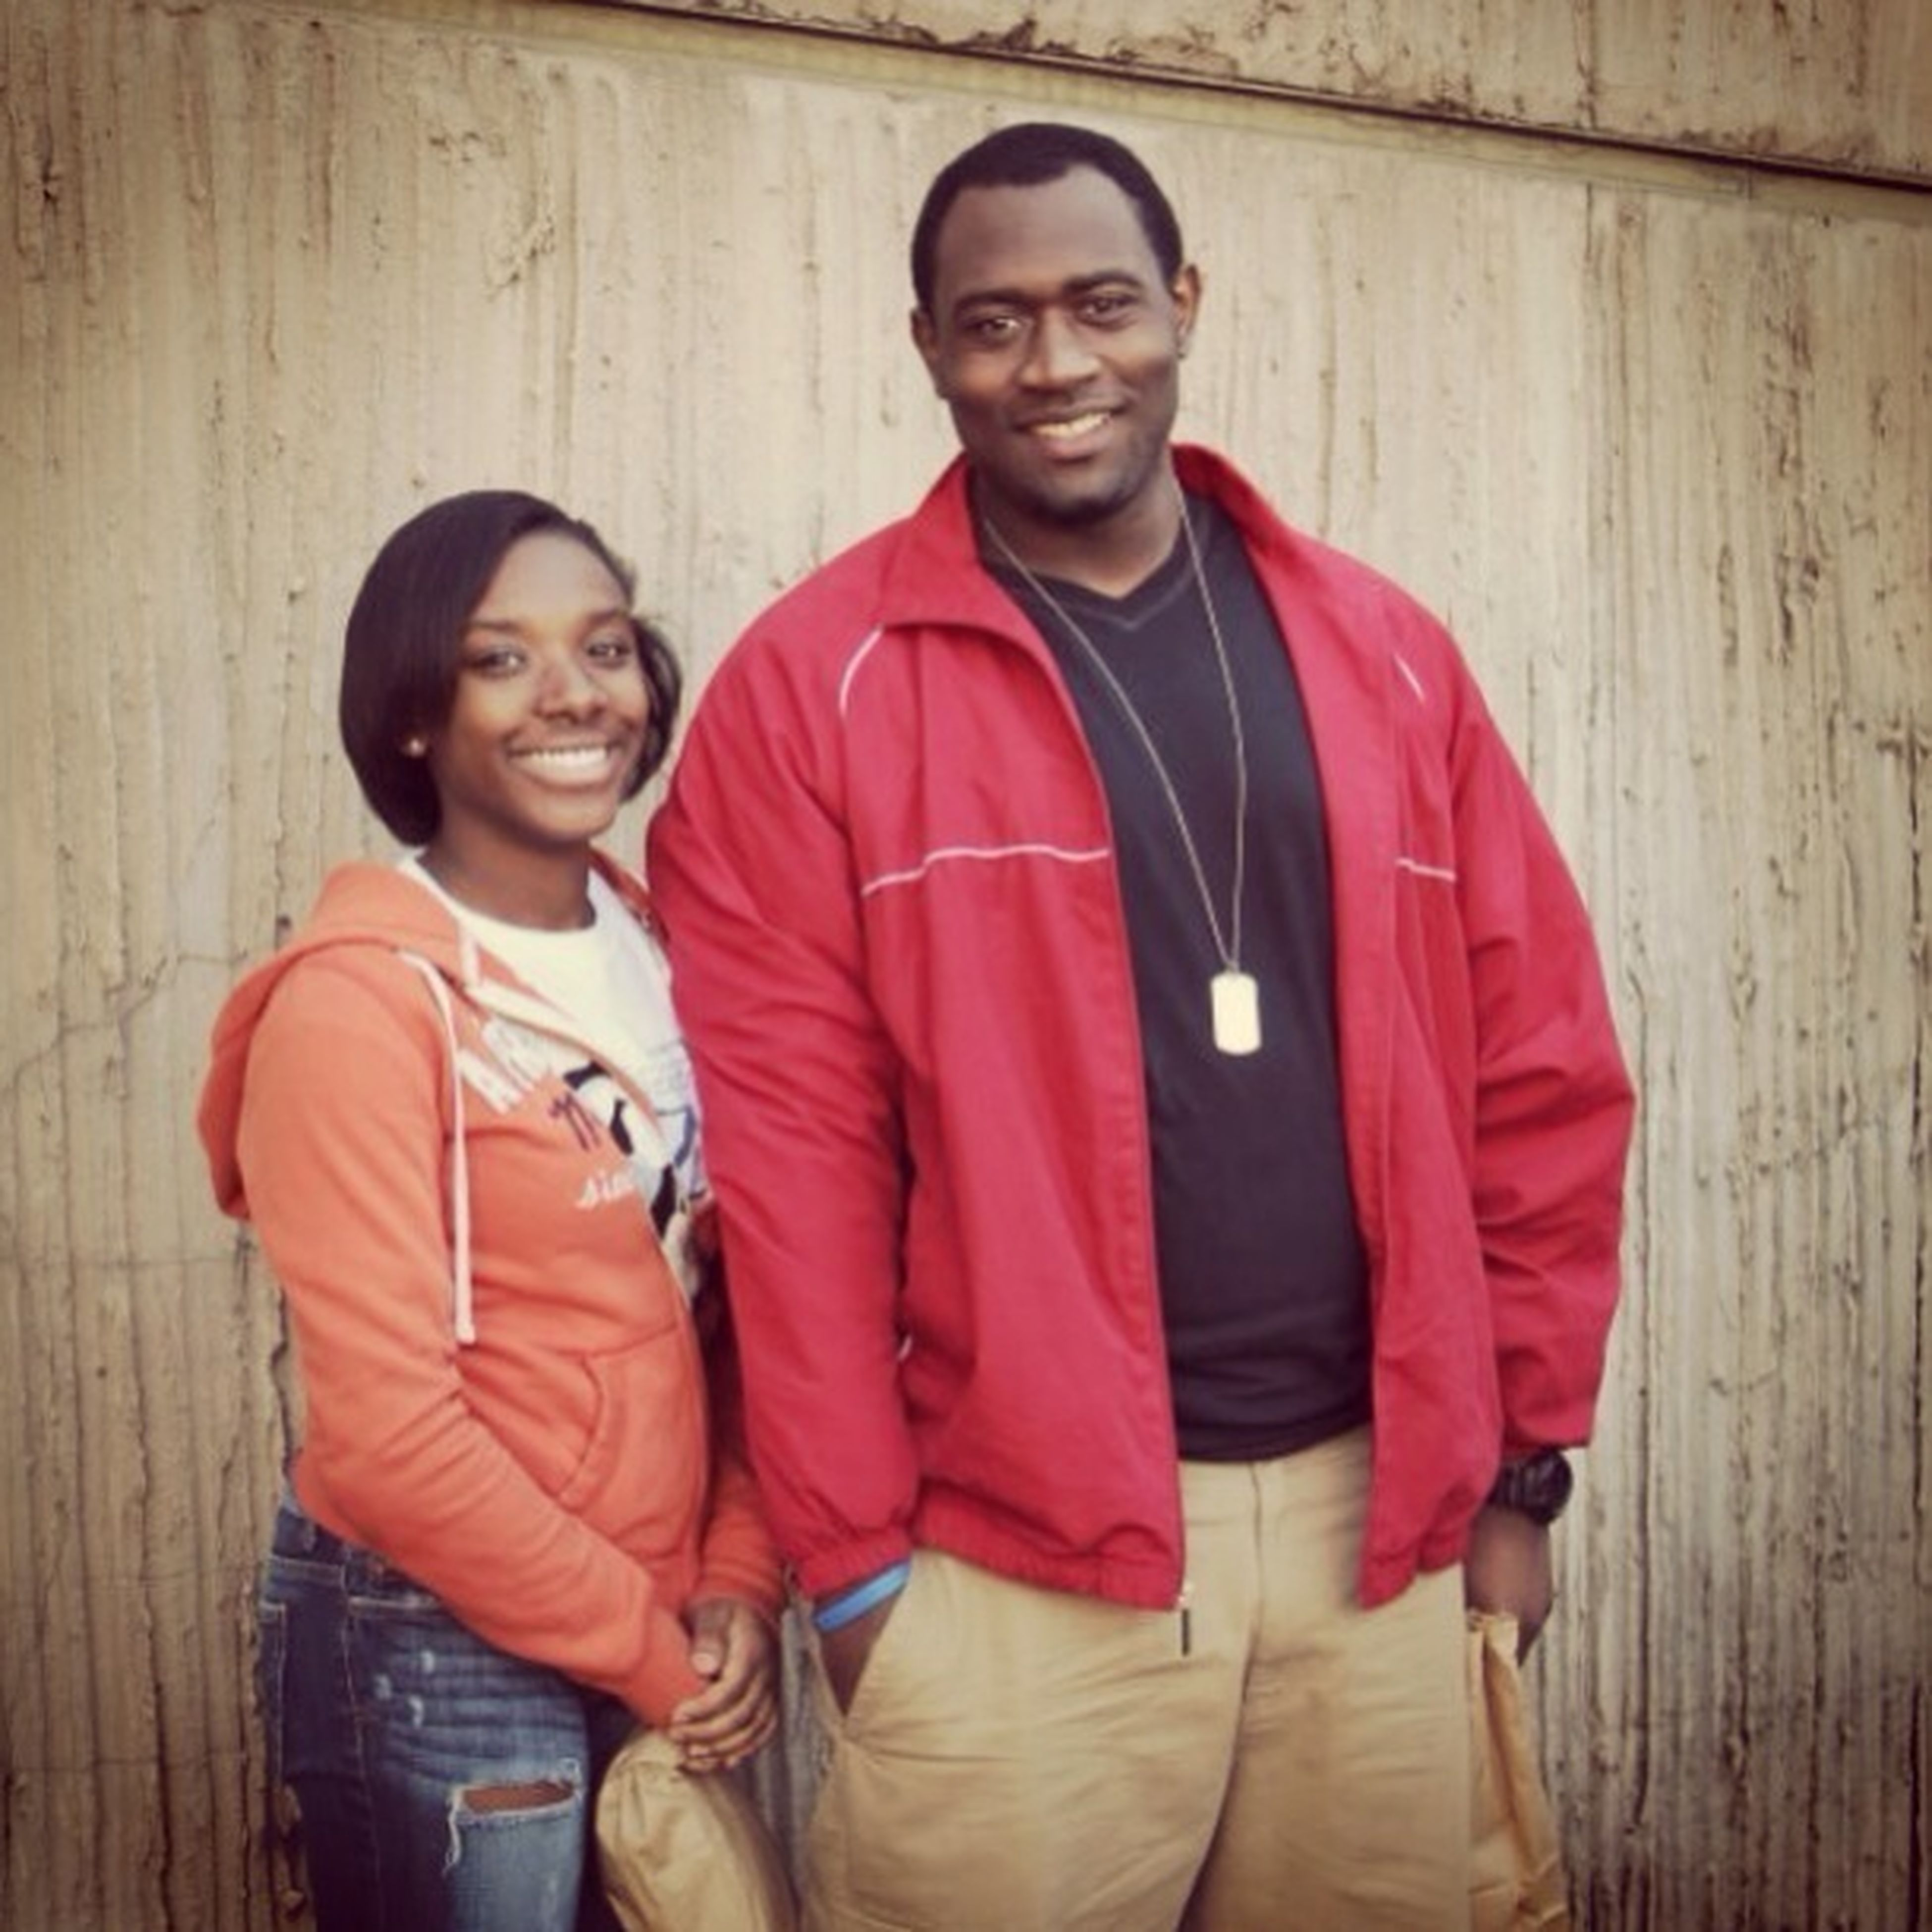 Me And My Brother At The Walk A Couple Of Days Ago